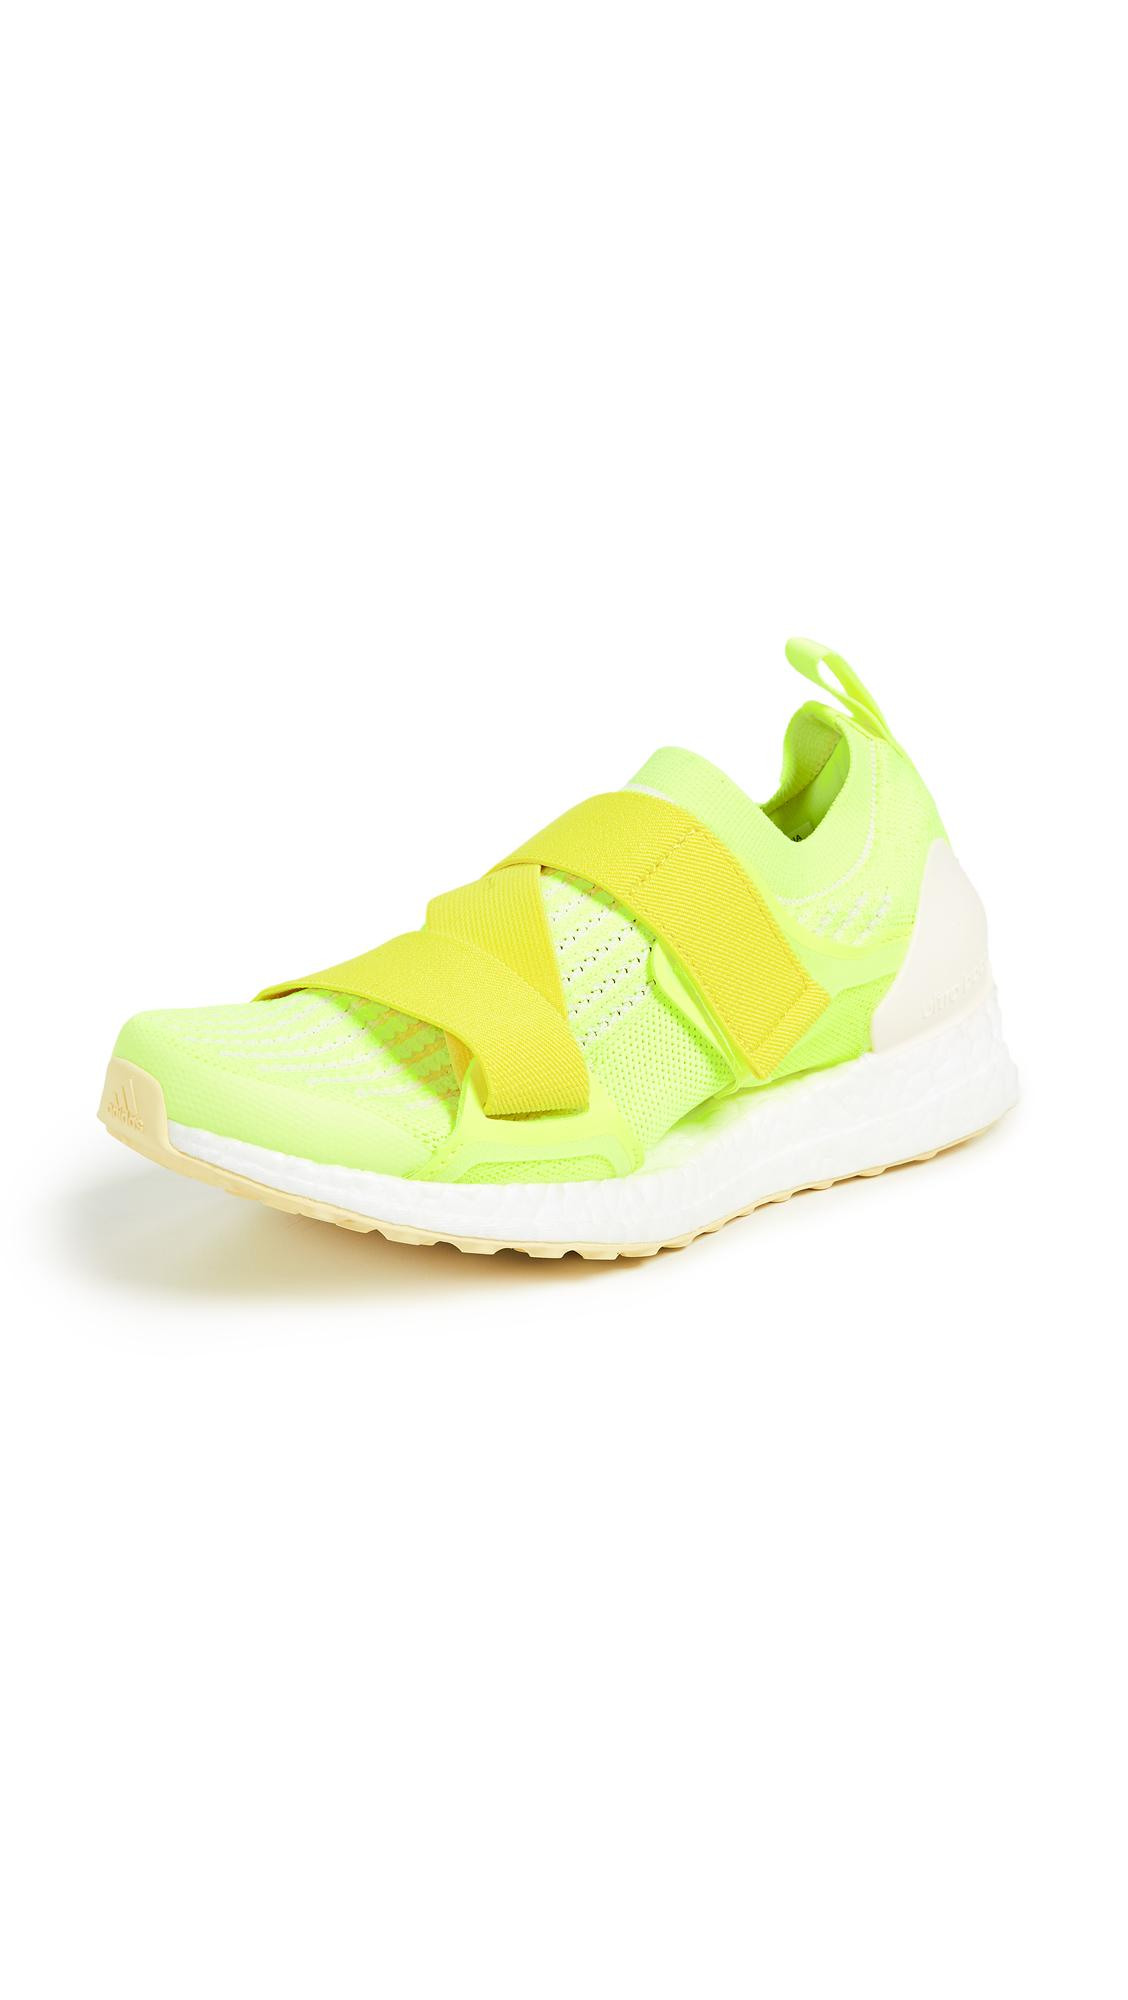 best sneakers 27202 7718f Adidas By Stella Mccartney Ultraboost X Fabric Sneakers, Bright Yellow In Solar  Yellow Yellow